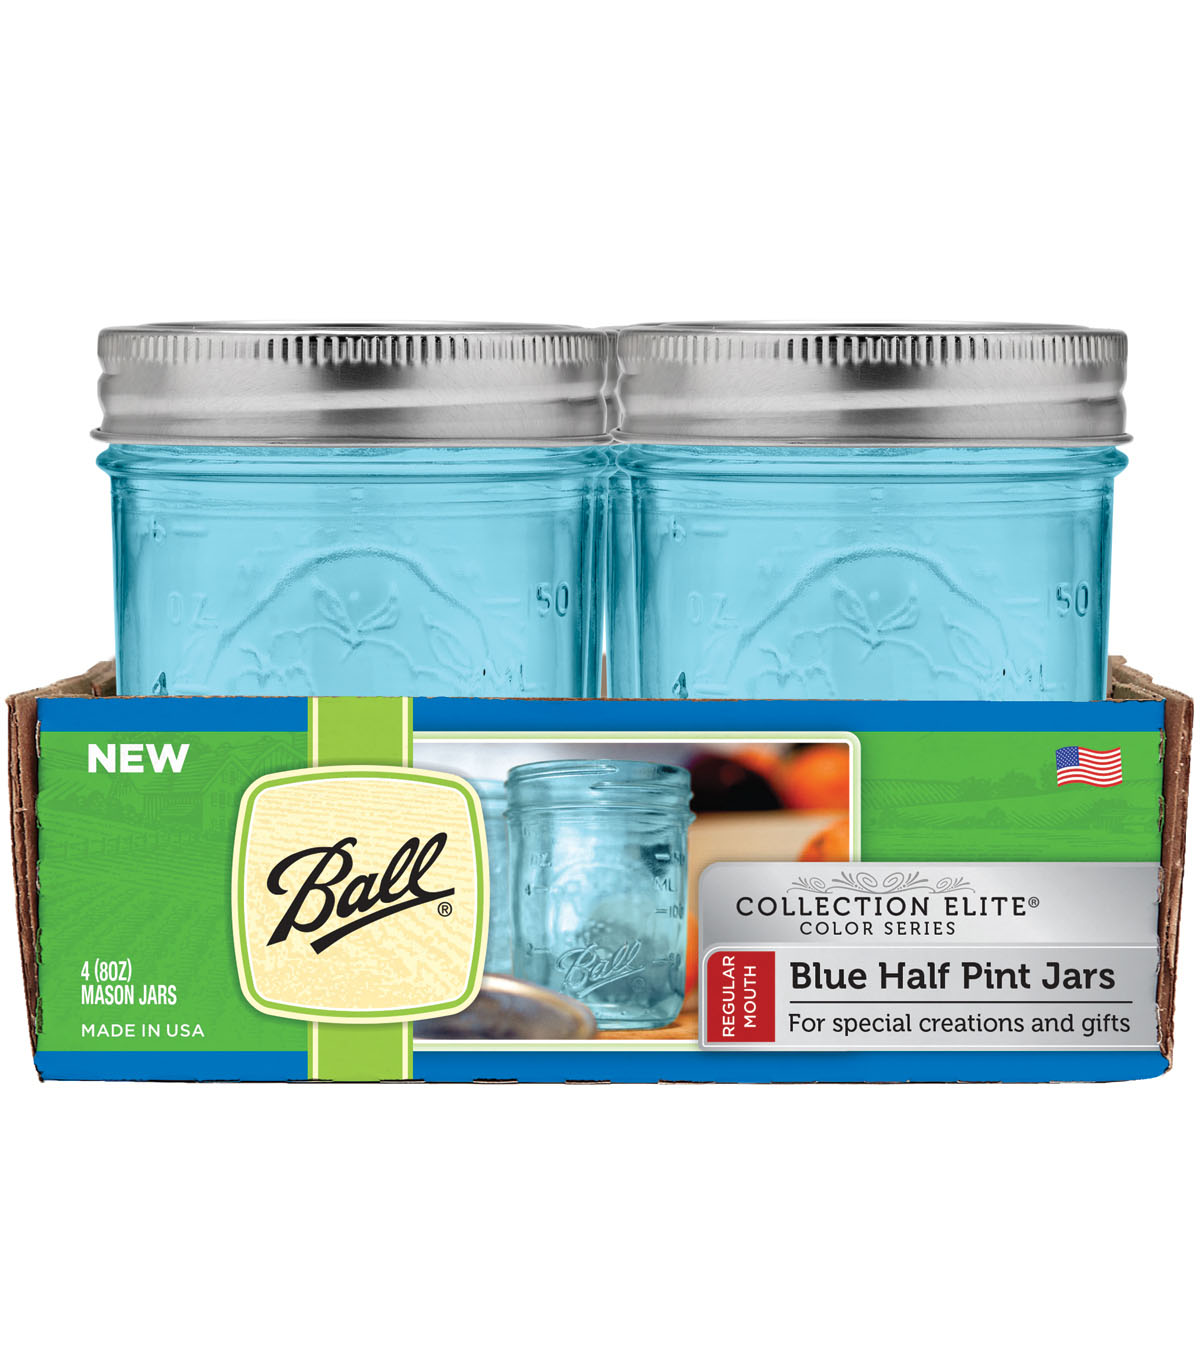 Ball® Collection Elite Color Series 4 pk 8 oz. Half Pint Jars-Blue